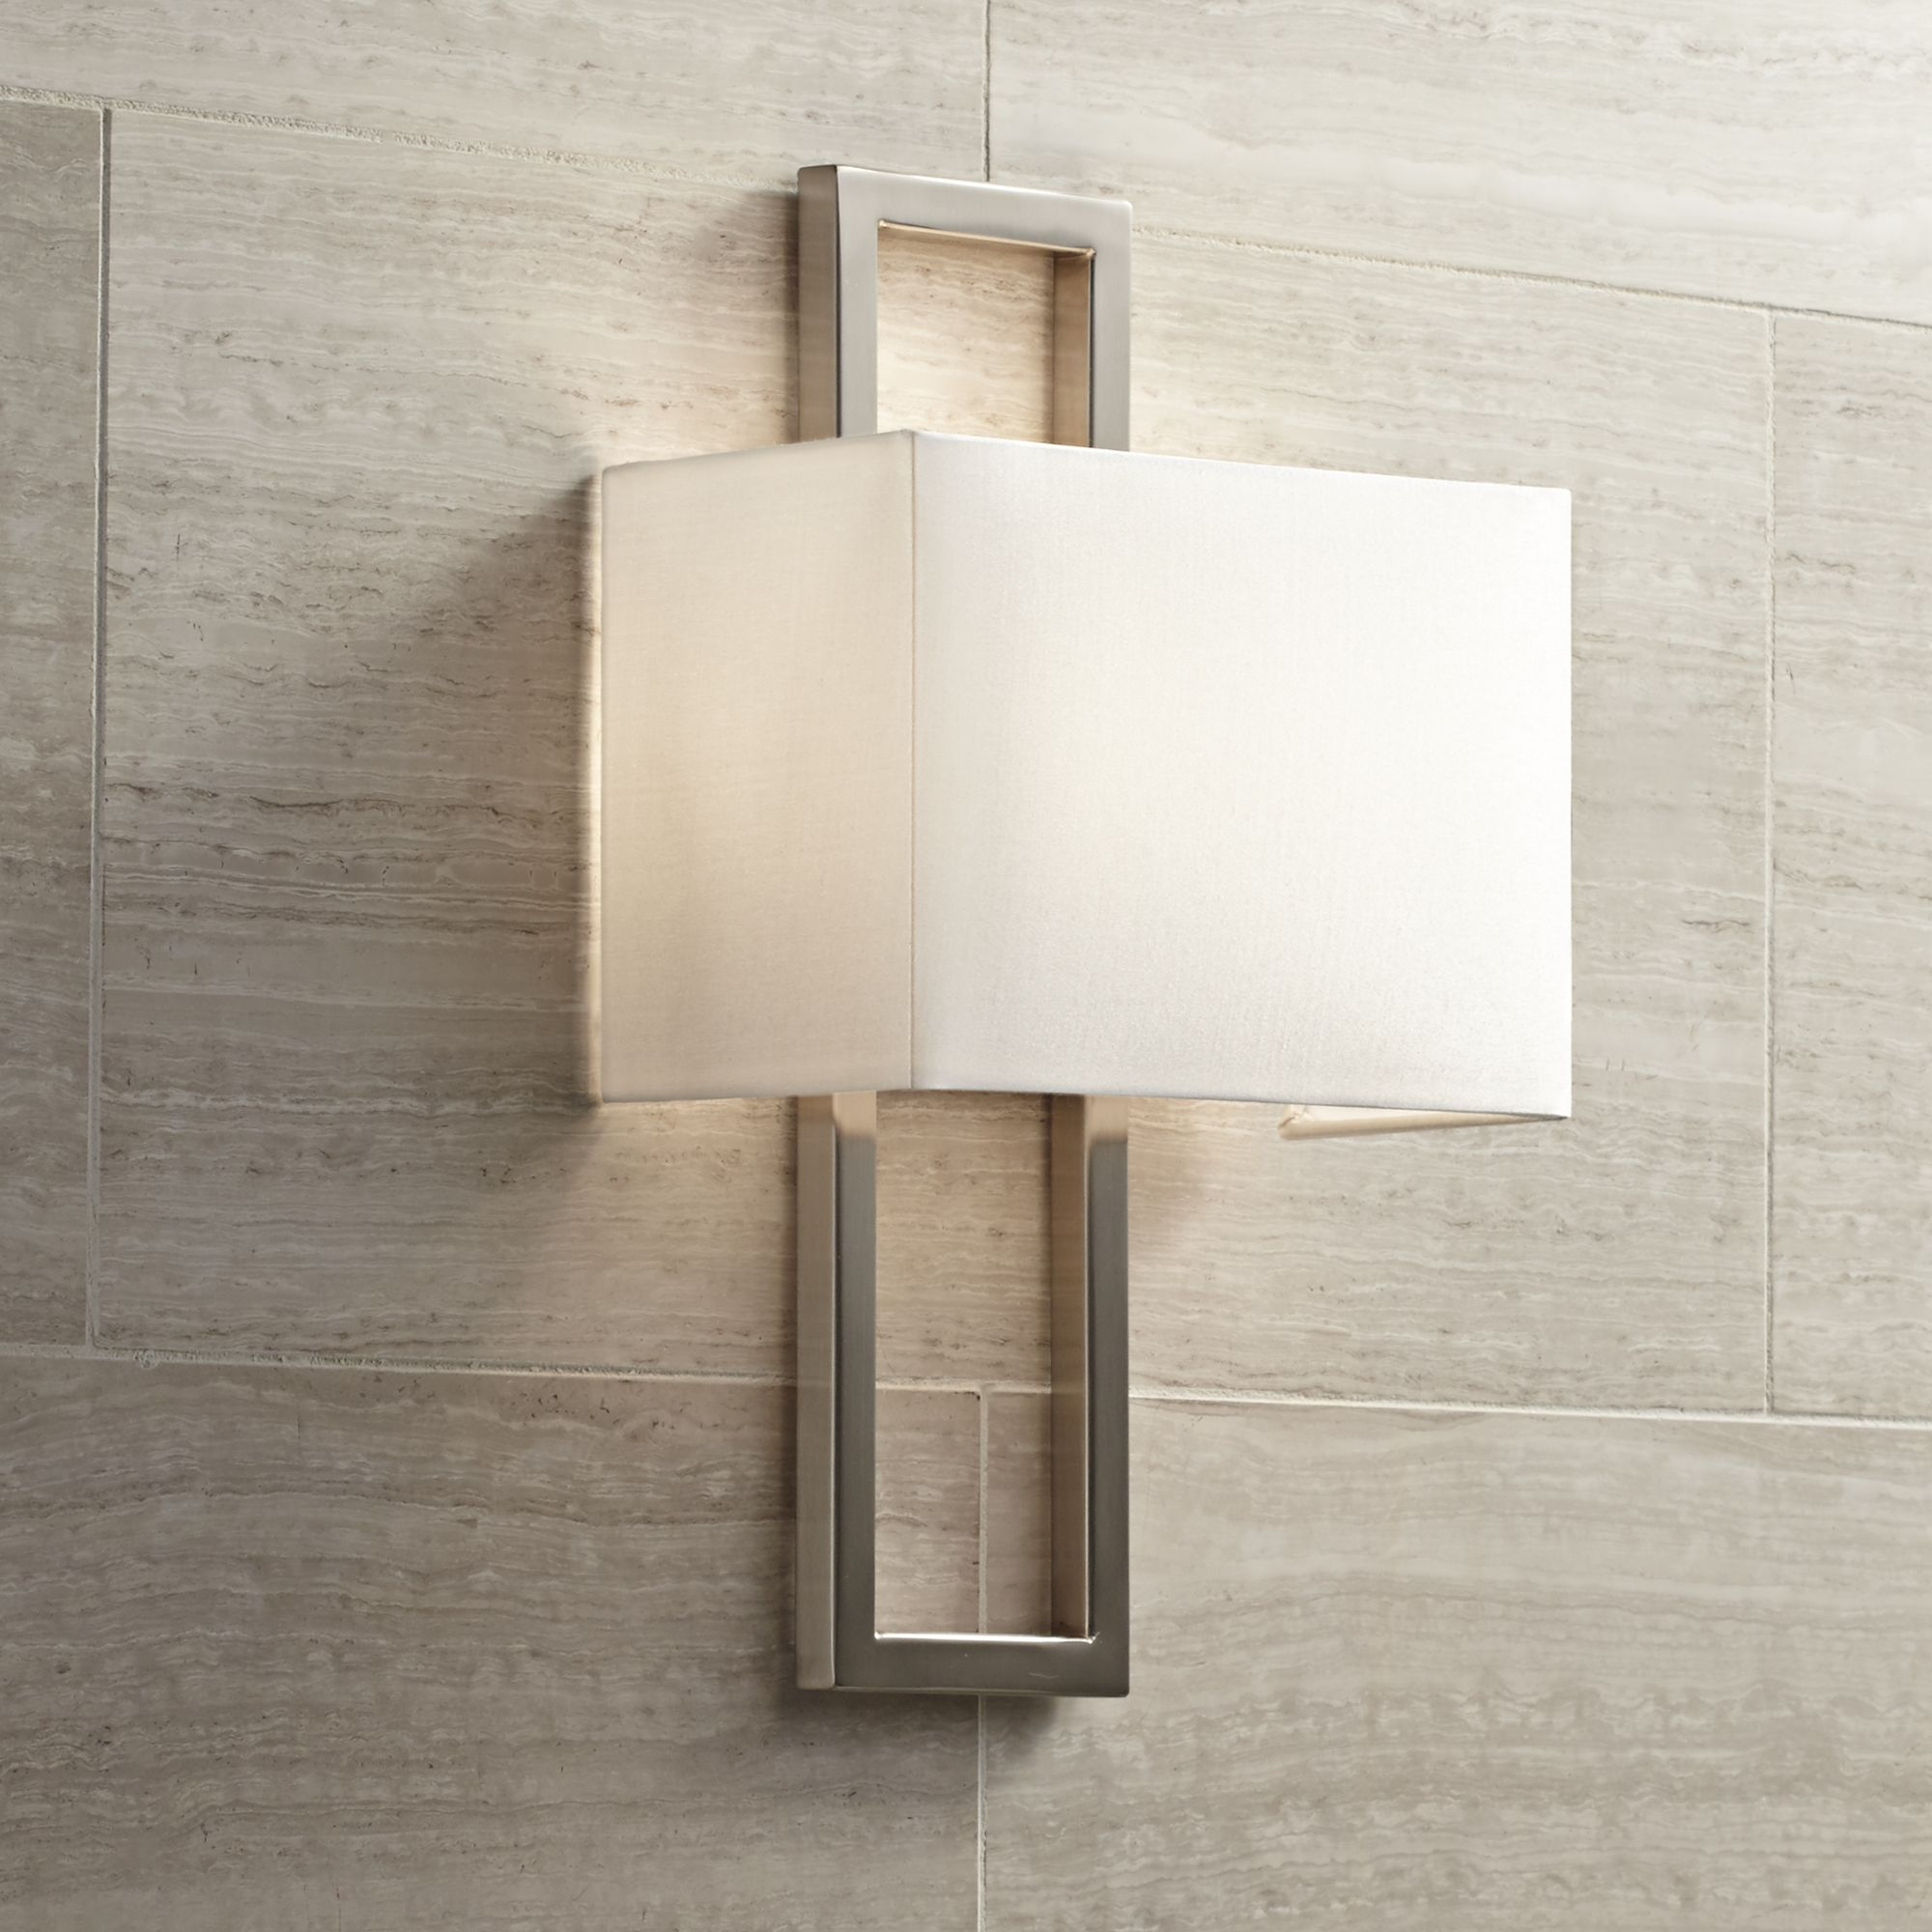 Possini Euro Brushed Steel 15 1/2 H Rectangular Wall Sconce : possini wall sconce - www.canuckmediamonitor.org